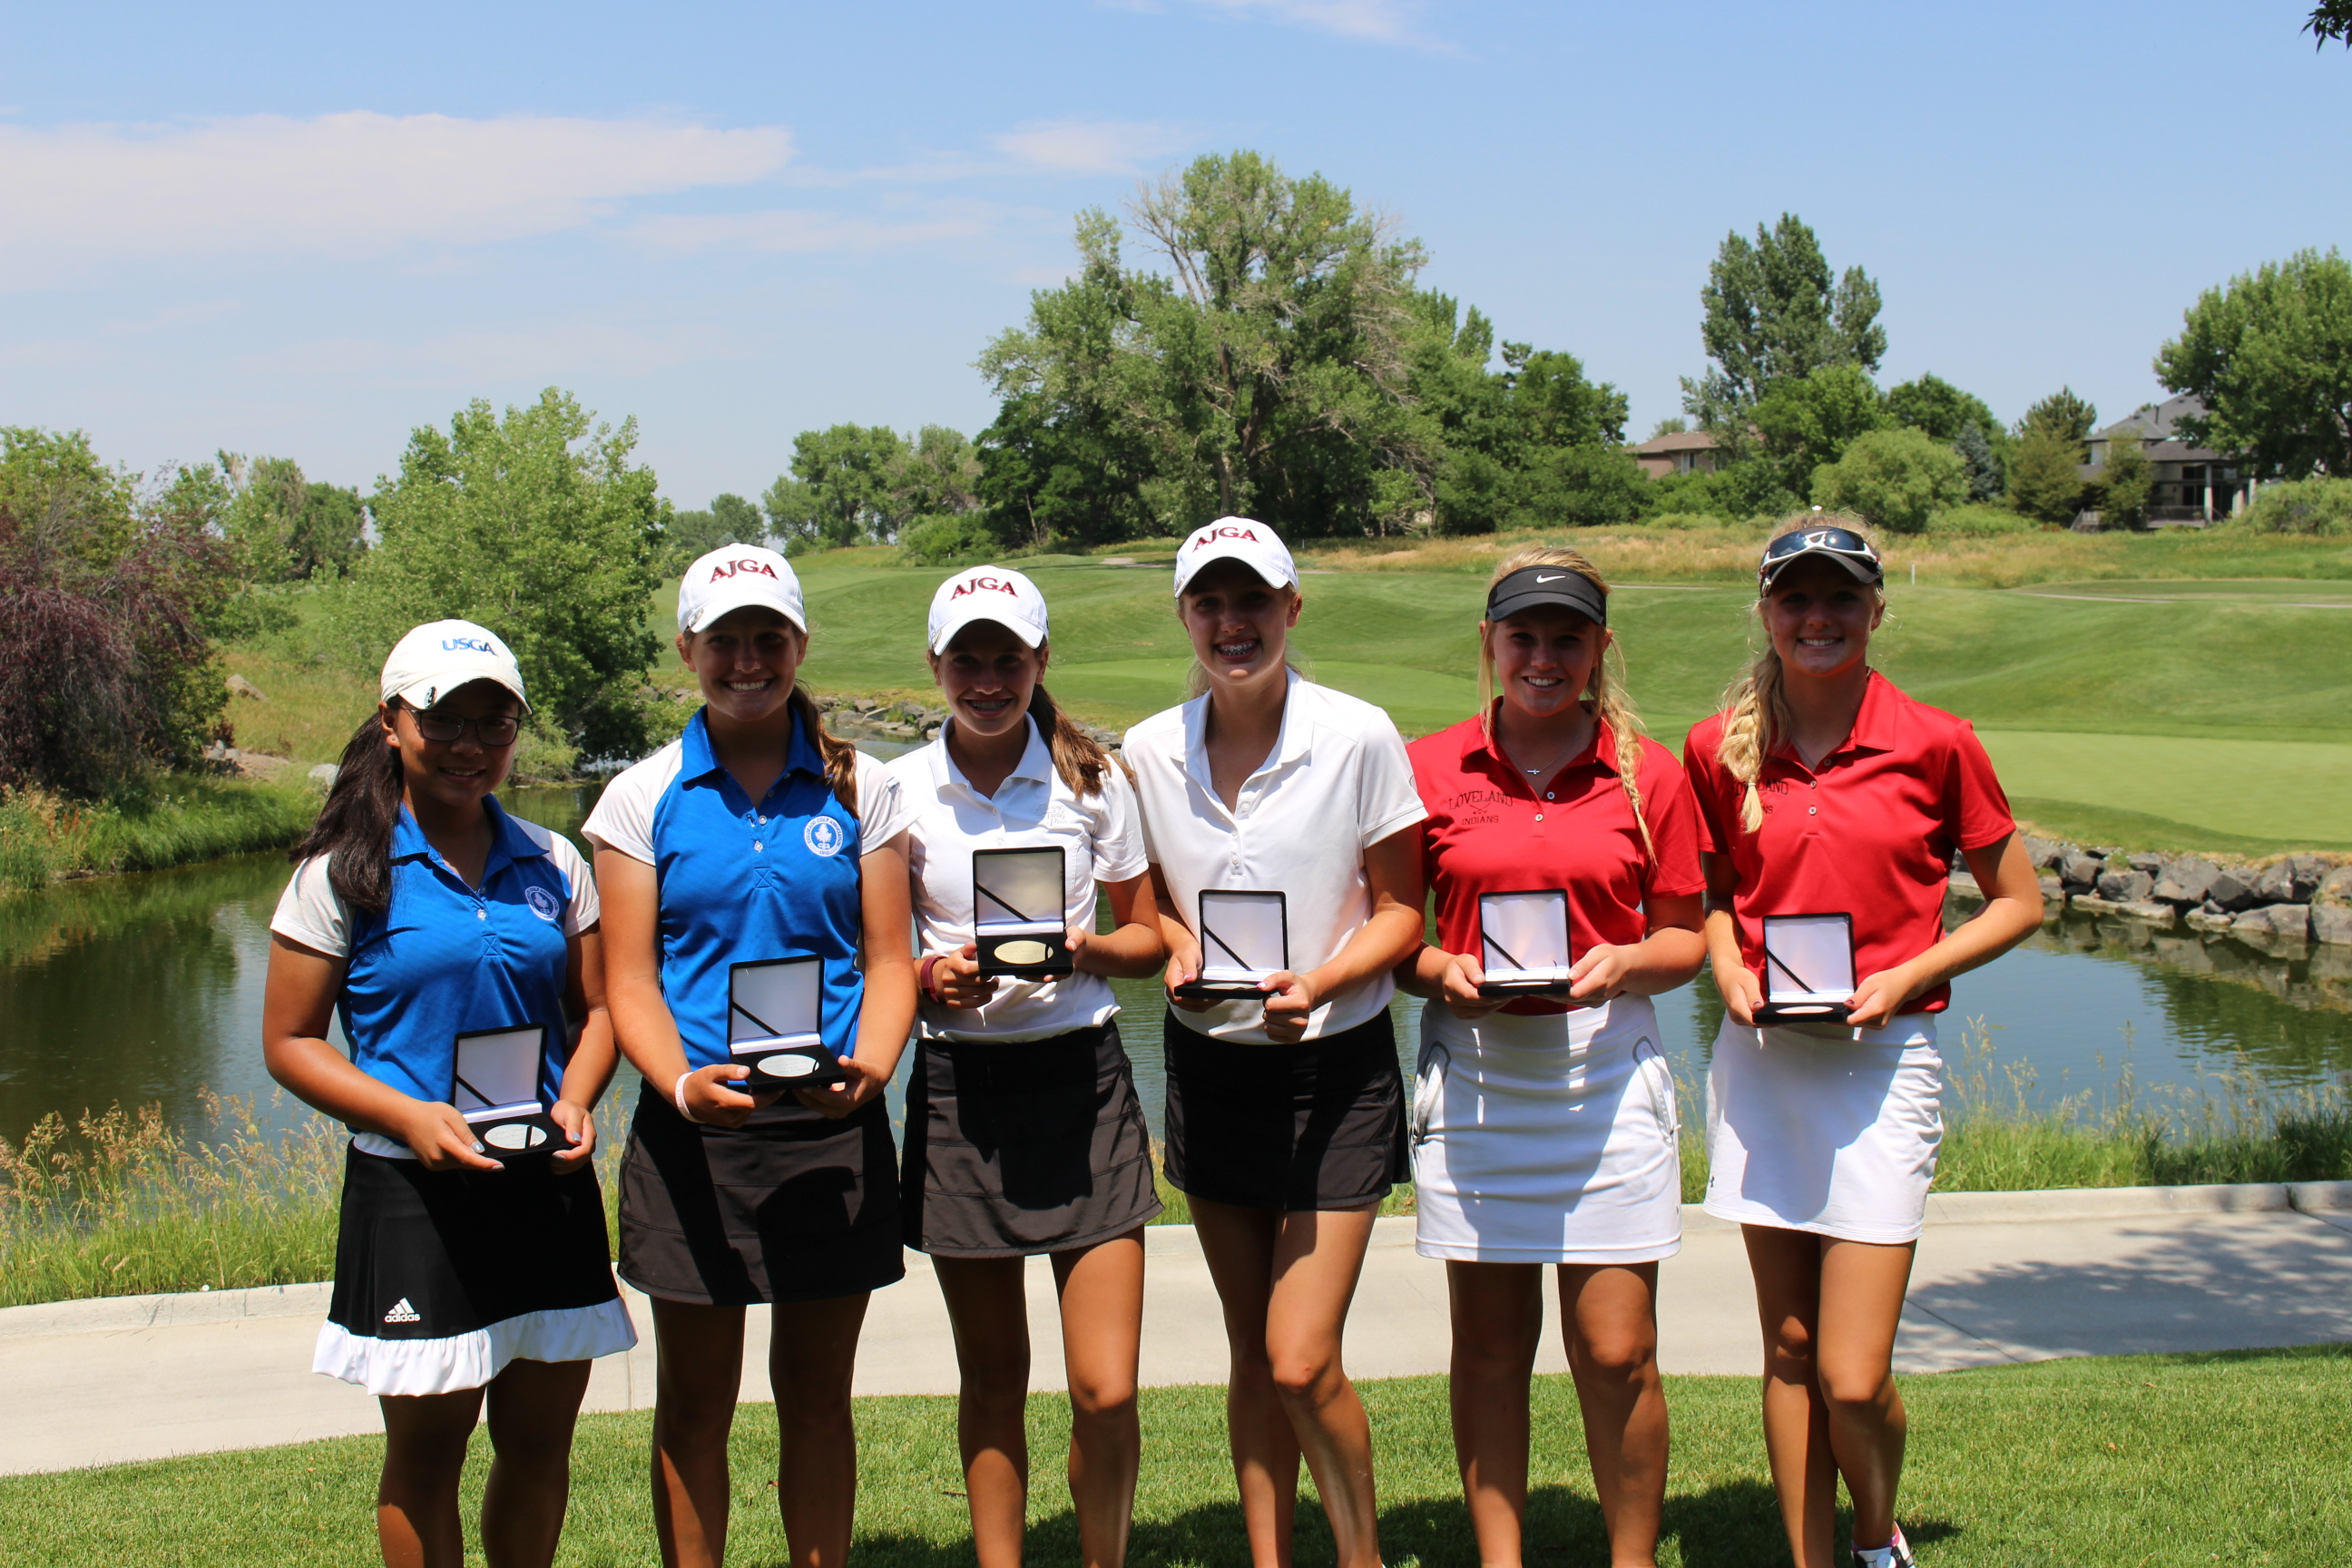 High Temps and Low Scores at JGAC Team Event